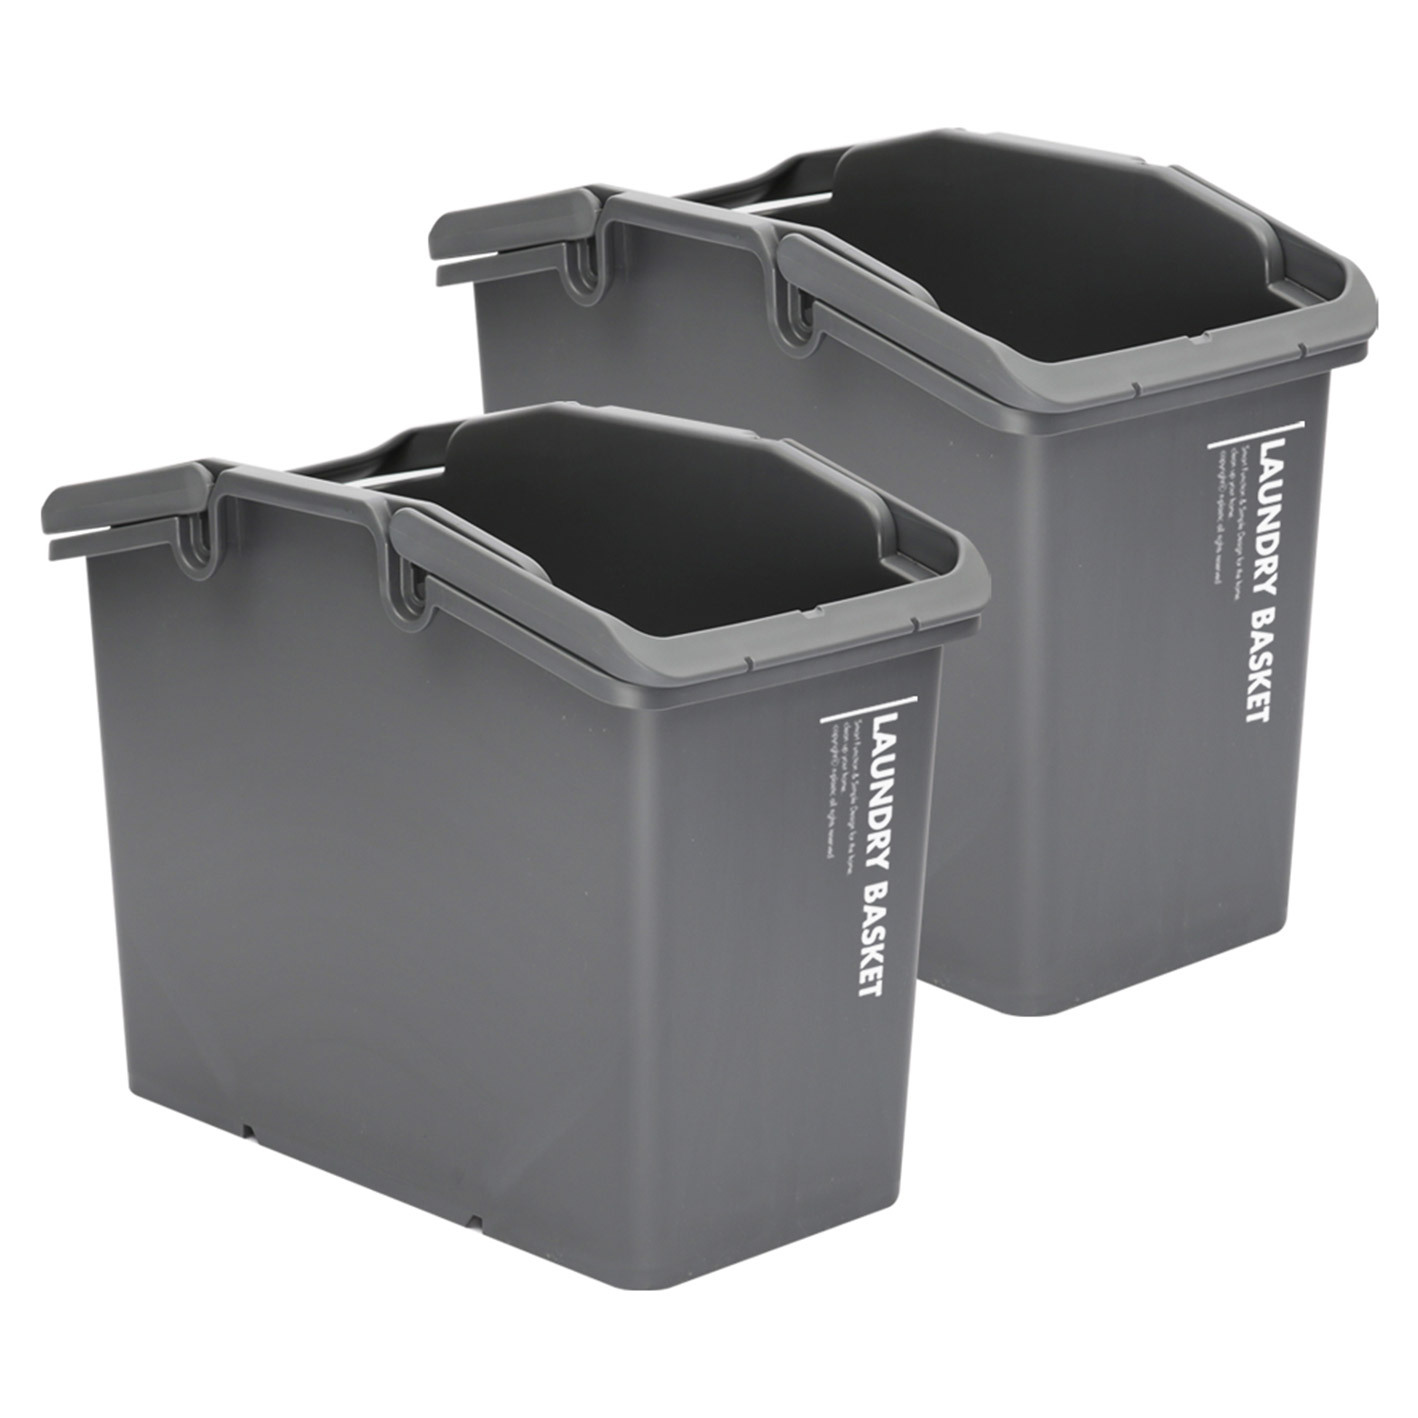 2X Multipurpose Laundry Basket - DARK GREY